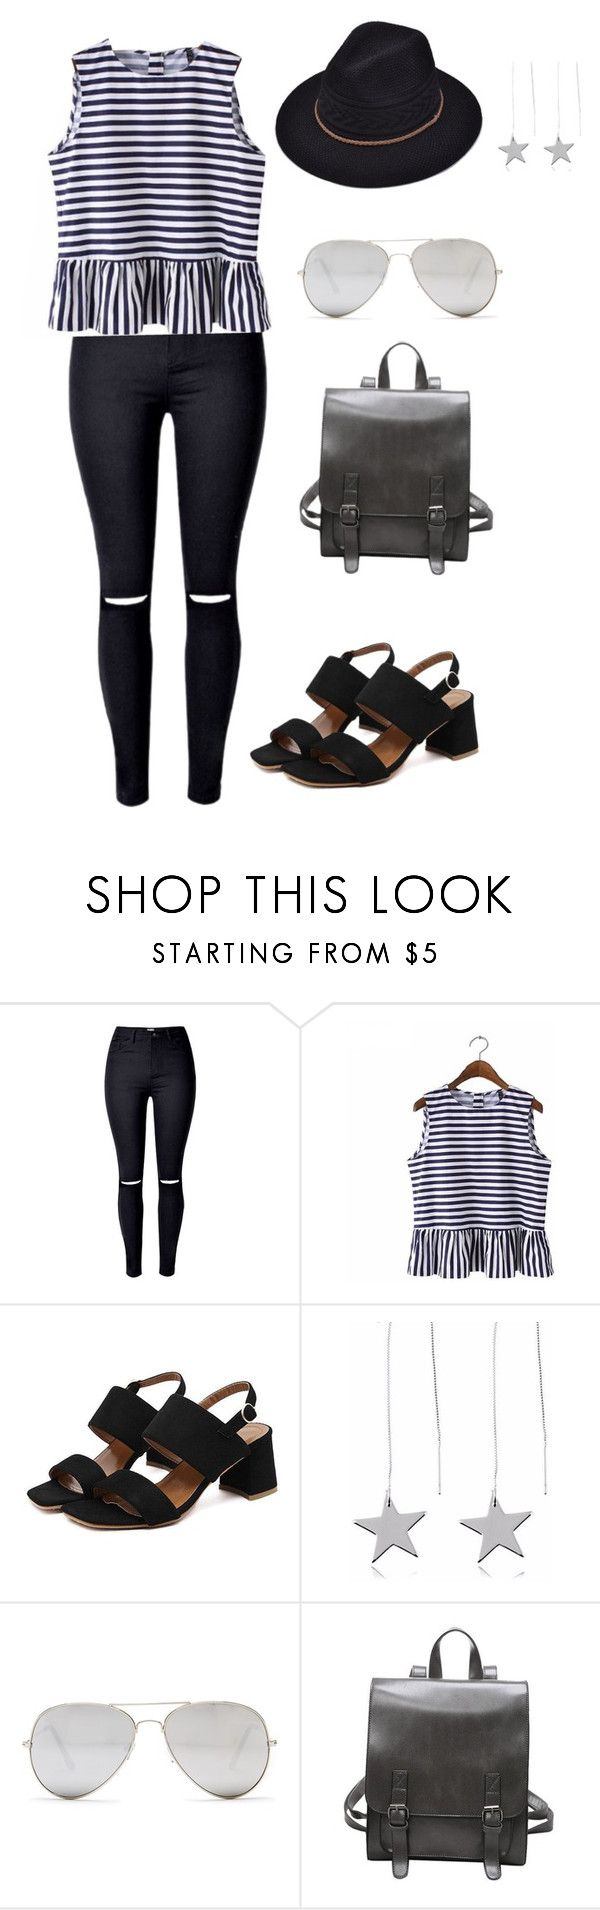 Outfit #1 by impavidgirl on Polyvore featuring Sunny Rebel